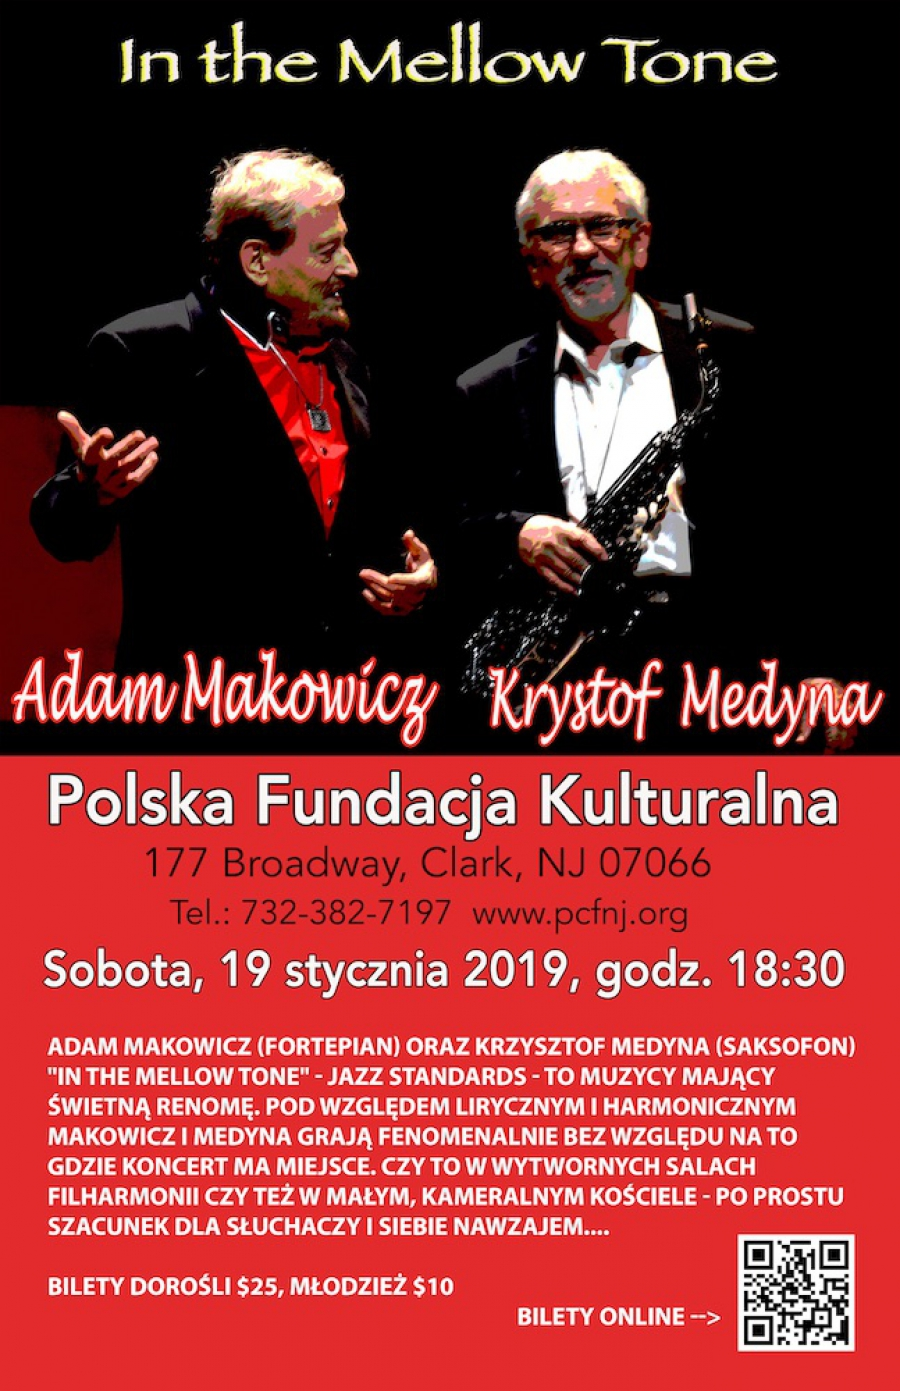 "Makowicz, Medyna ""In the Mellow Tone"" - concert"